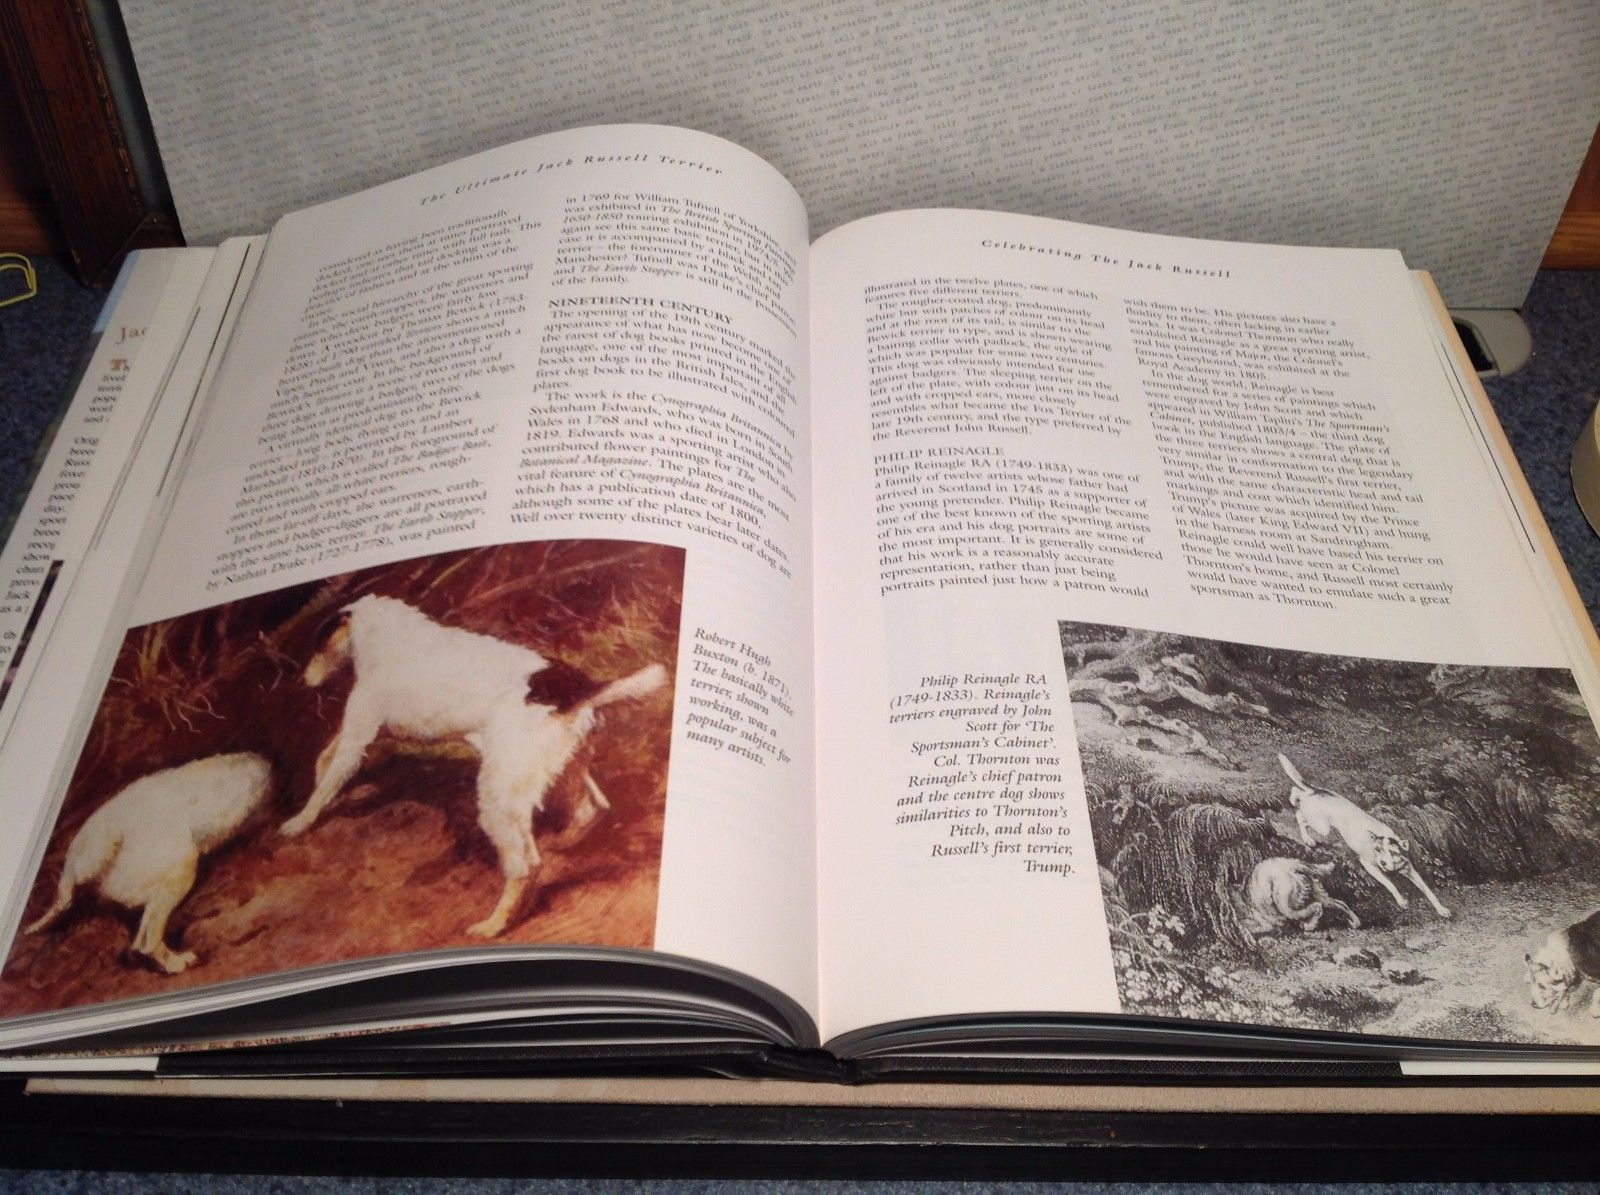 The Ultimate Jack Russel Terrier Book by Mary Strom